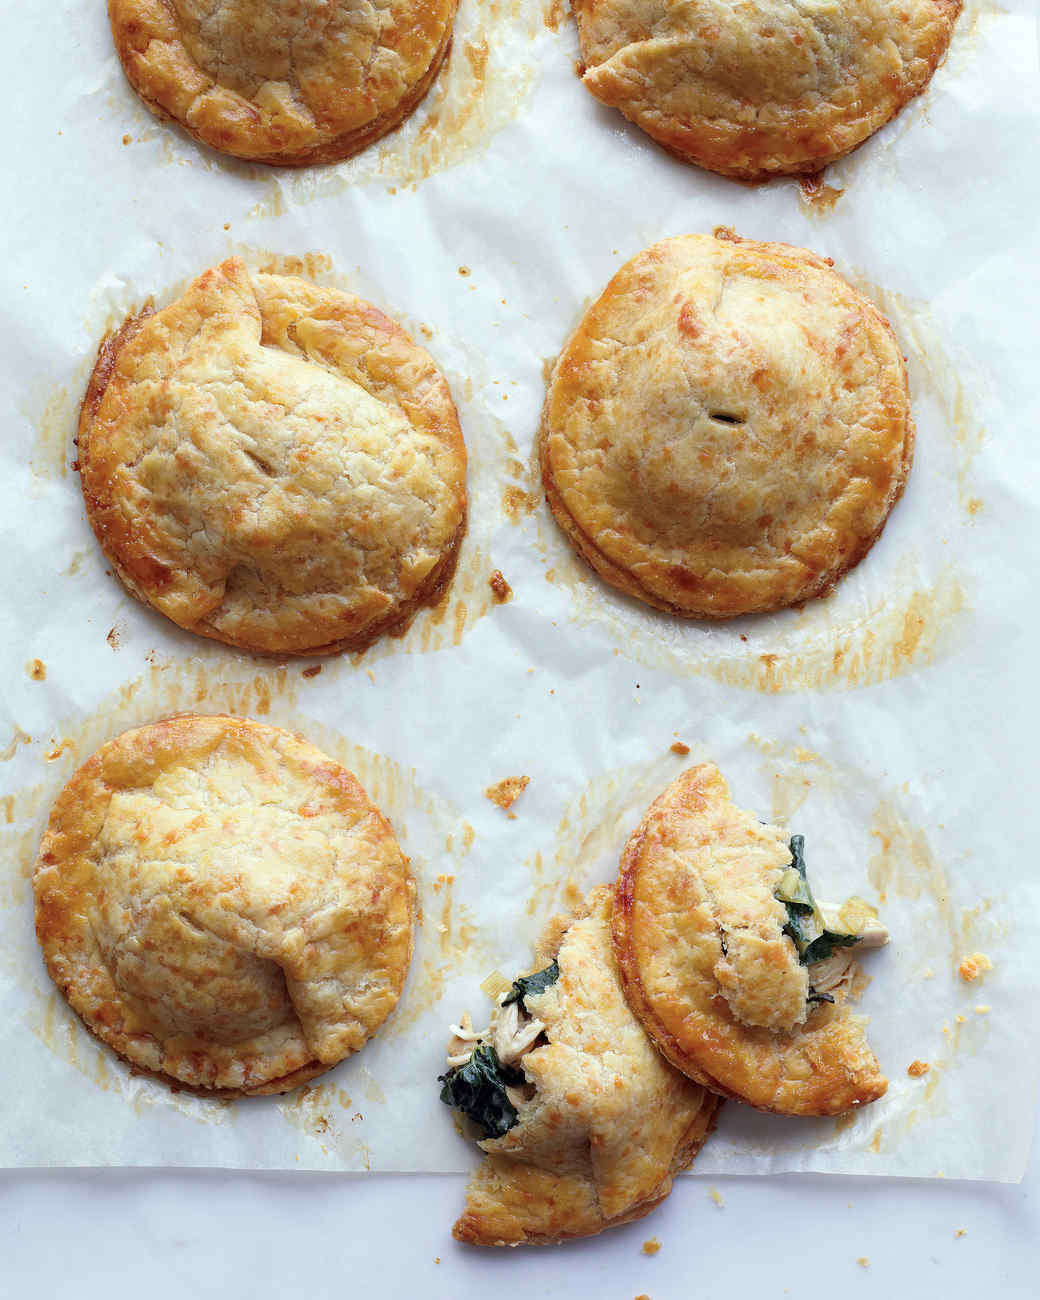 Chicken and Kale Hand Pies with Cheddar Crust